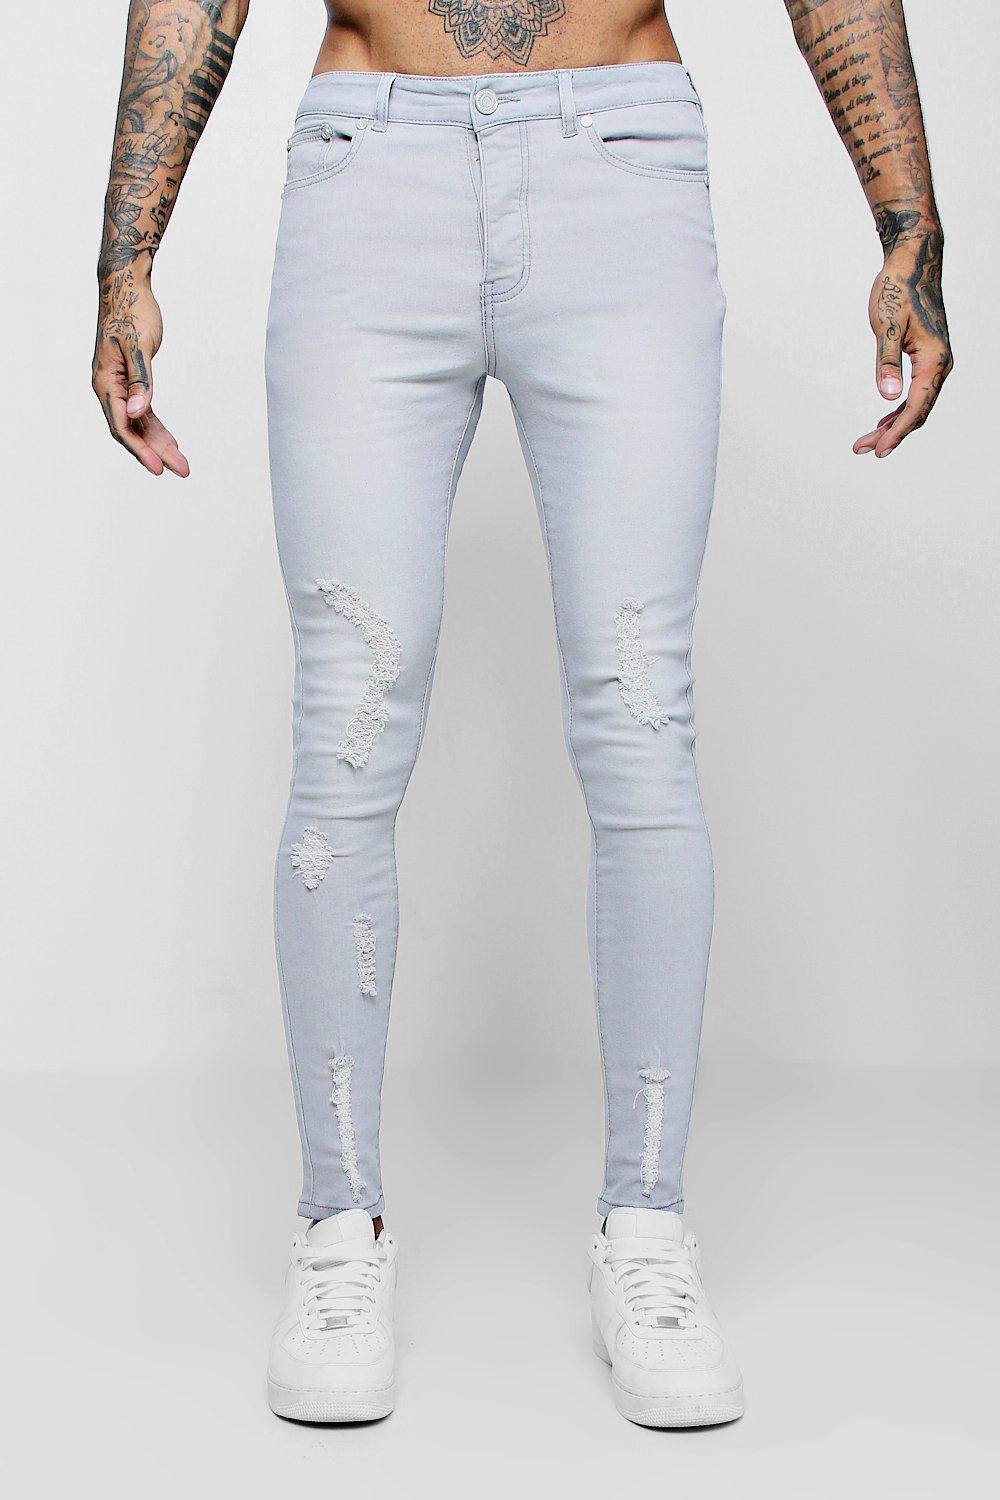 Spray on Skinny Jeans with All Over Rips